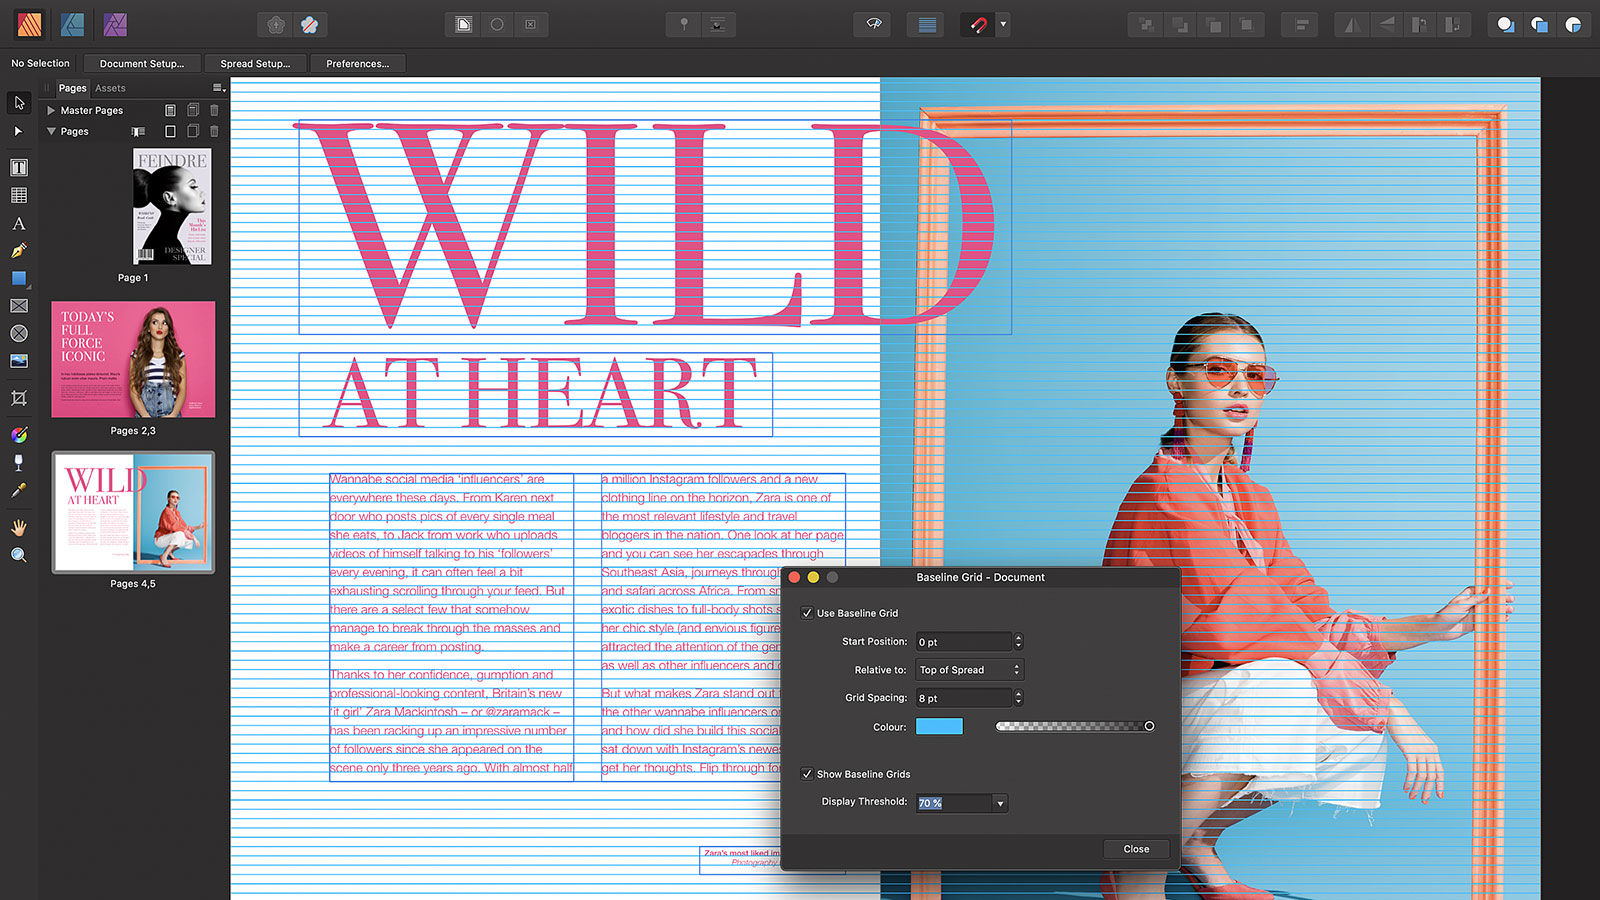 Serif just launched its InDesign killer Affinity Publisher